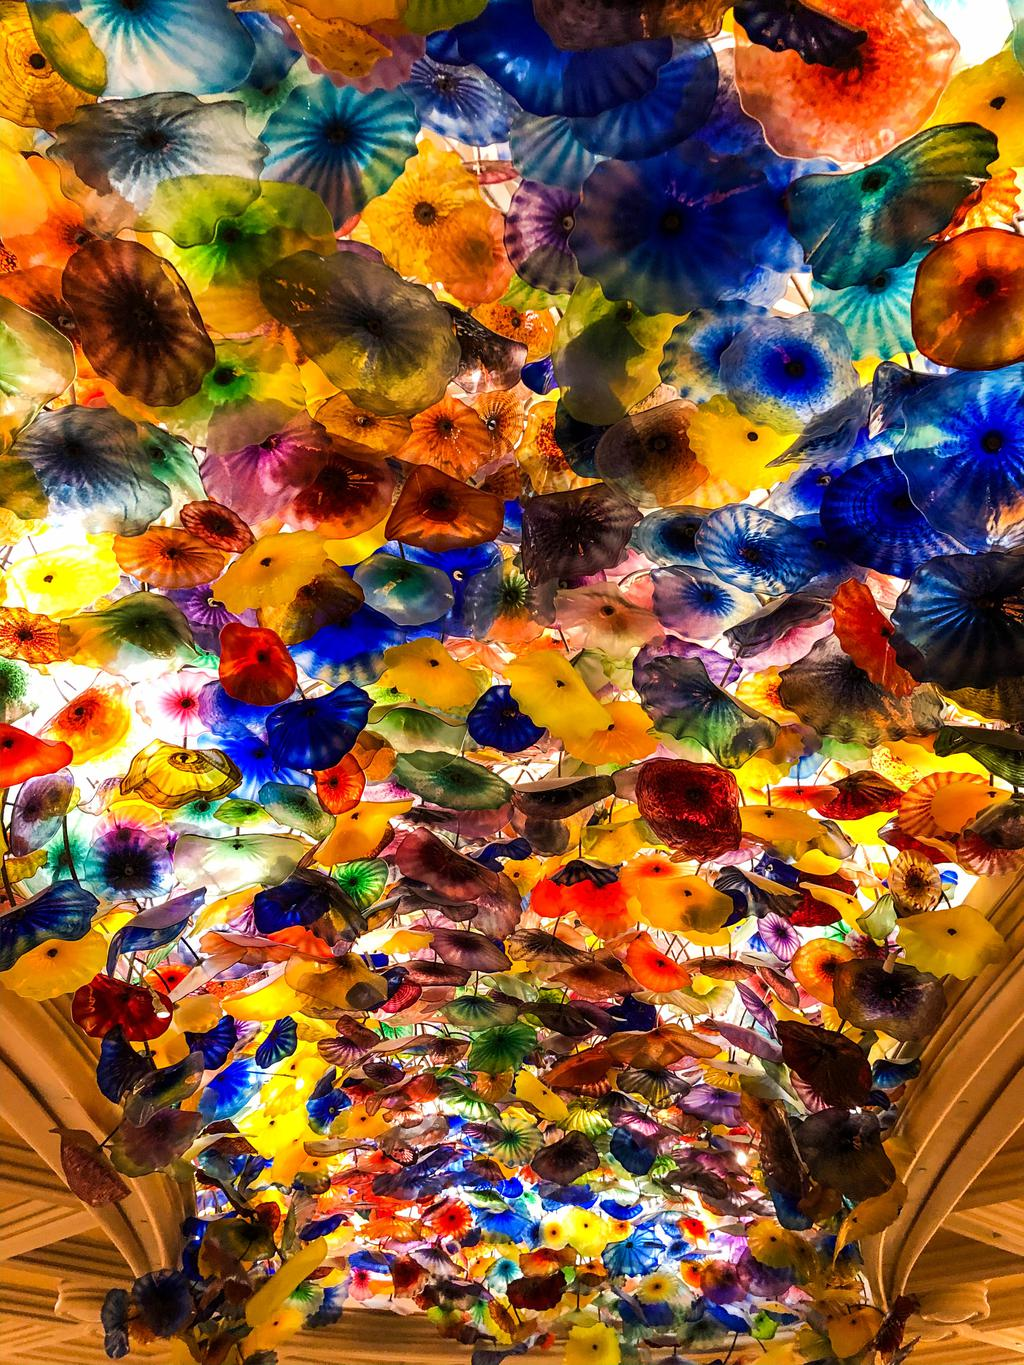 Chihuly at the Bellagio